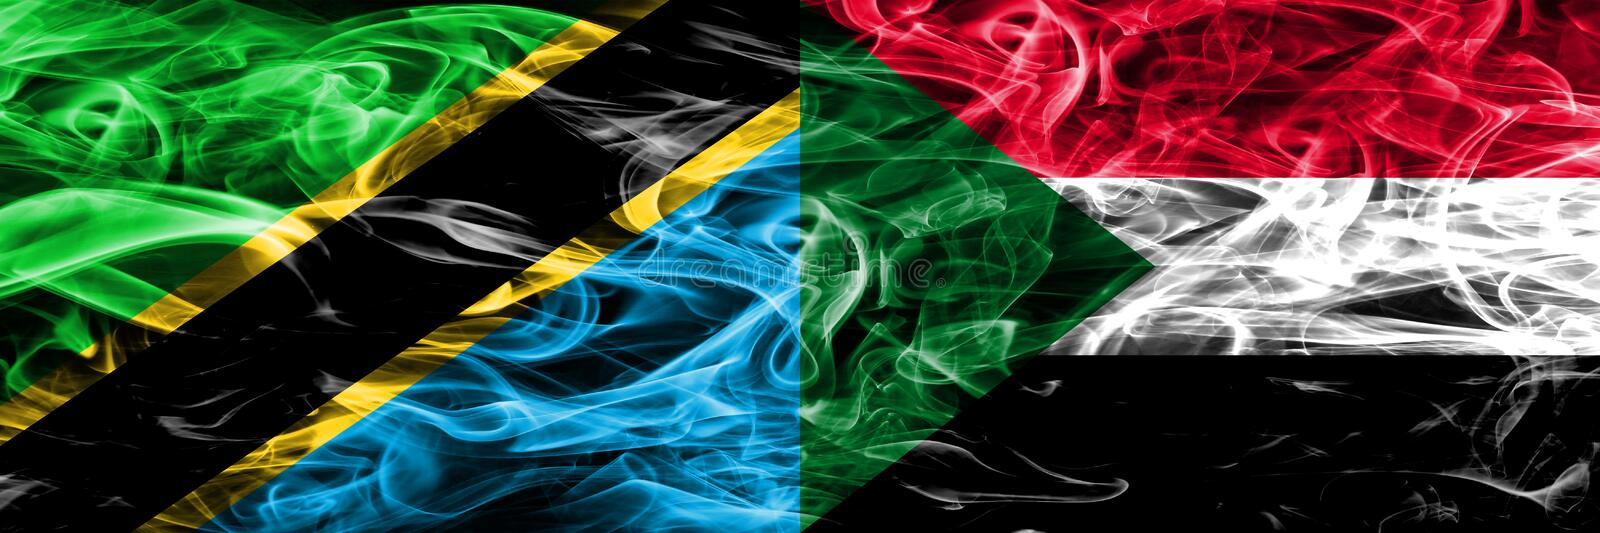 Tanzania vs Sudan, Sudanese smoke flags placed side by side. Thick colored silky smoke flags of Tanzanian and Sudan, Sudanese.  stock photo